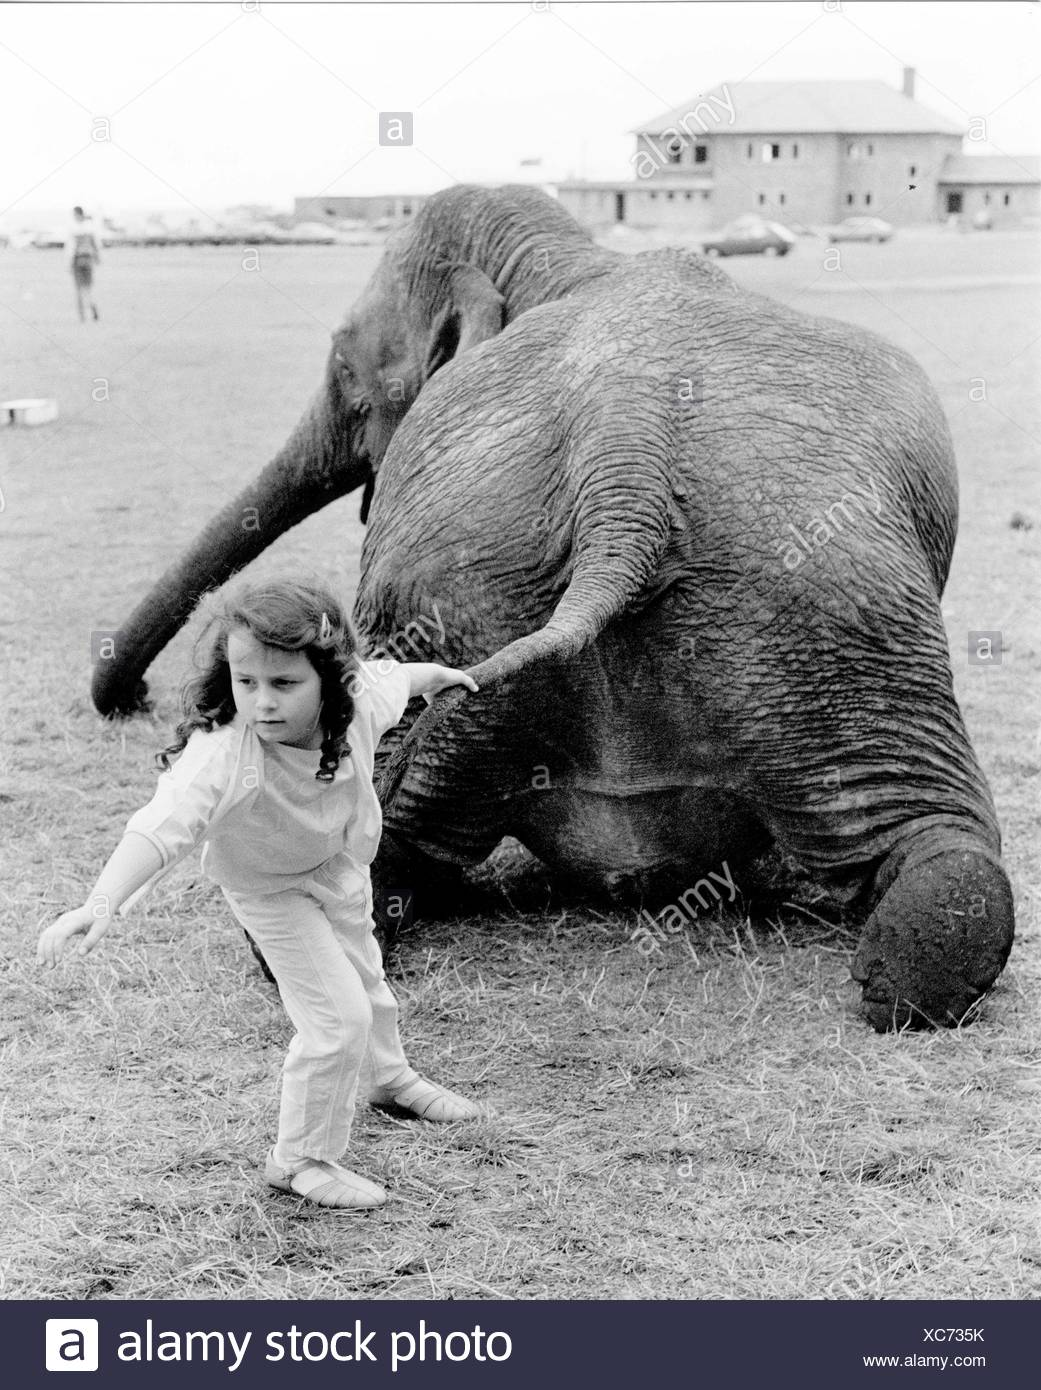 Girl pulls elephant on tail, England, Great Britain Stock Photo